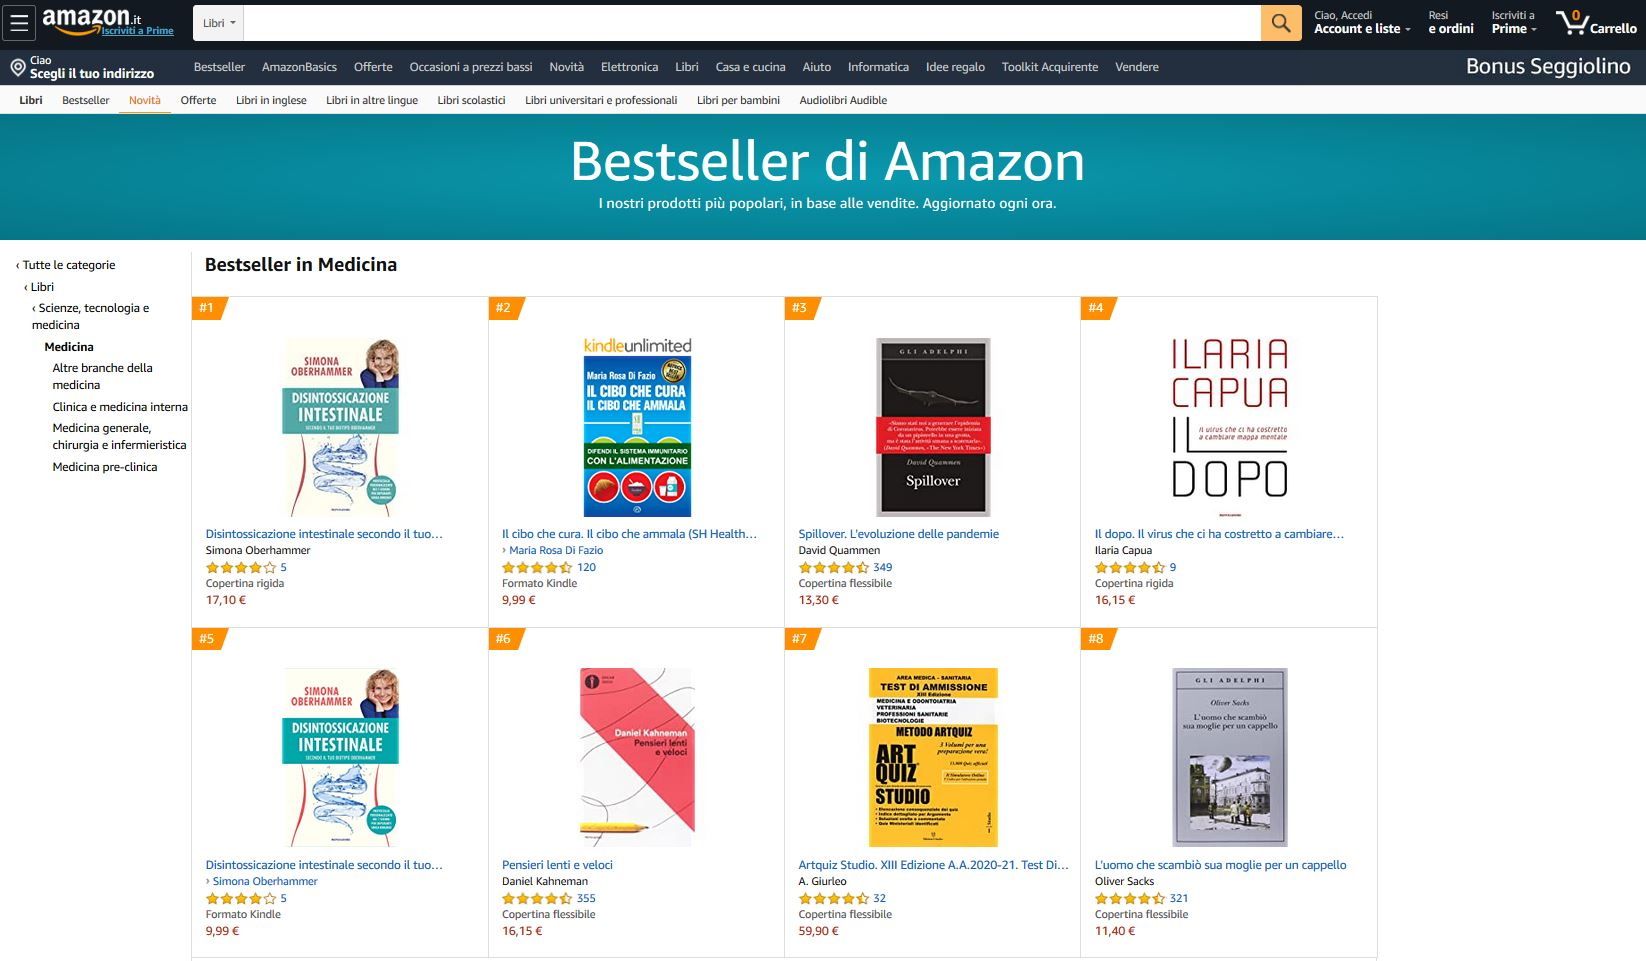 bestseller-medicina-posizione1-5kindle